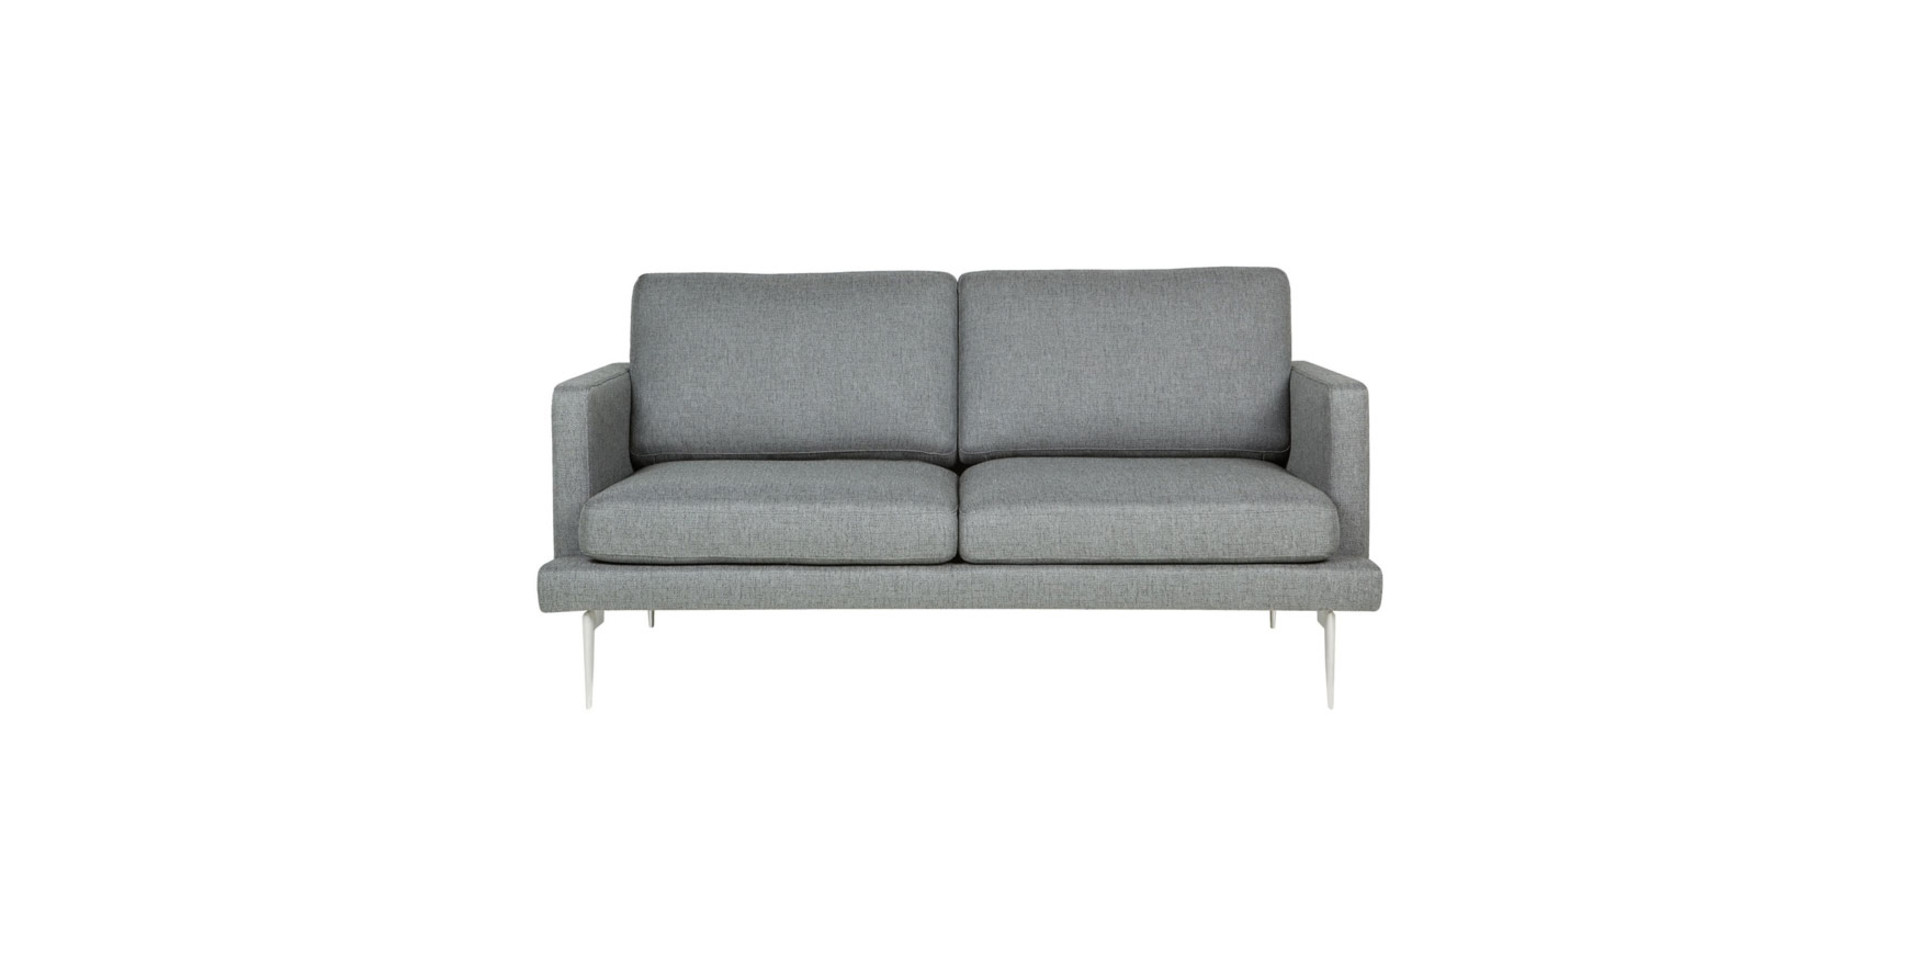 sits-ludvig-canape-2seater_nancy6_dark_grey_1